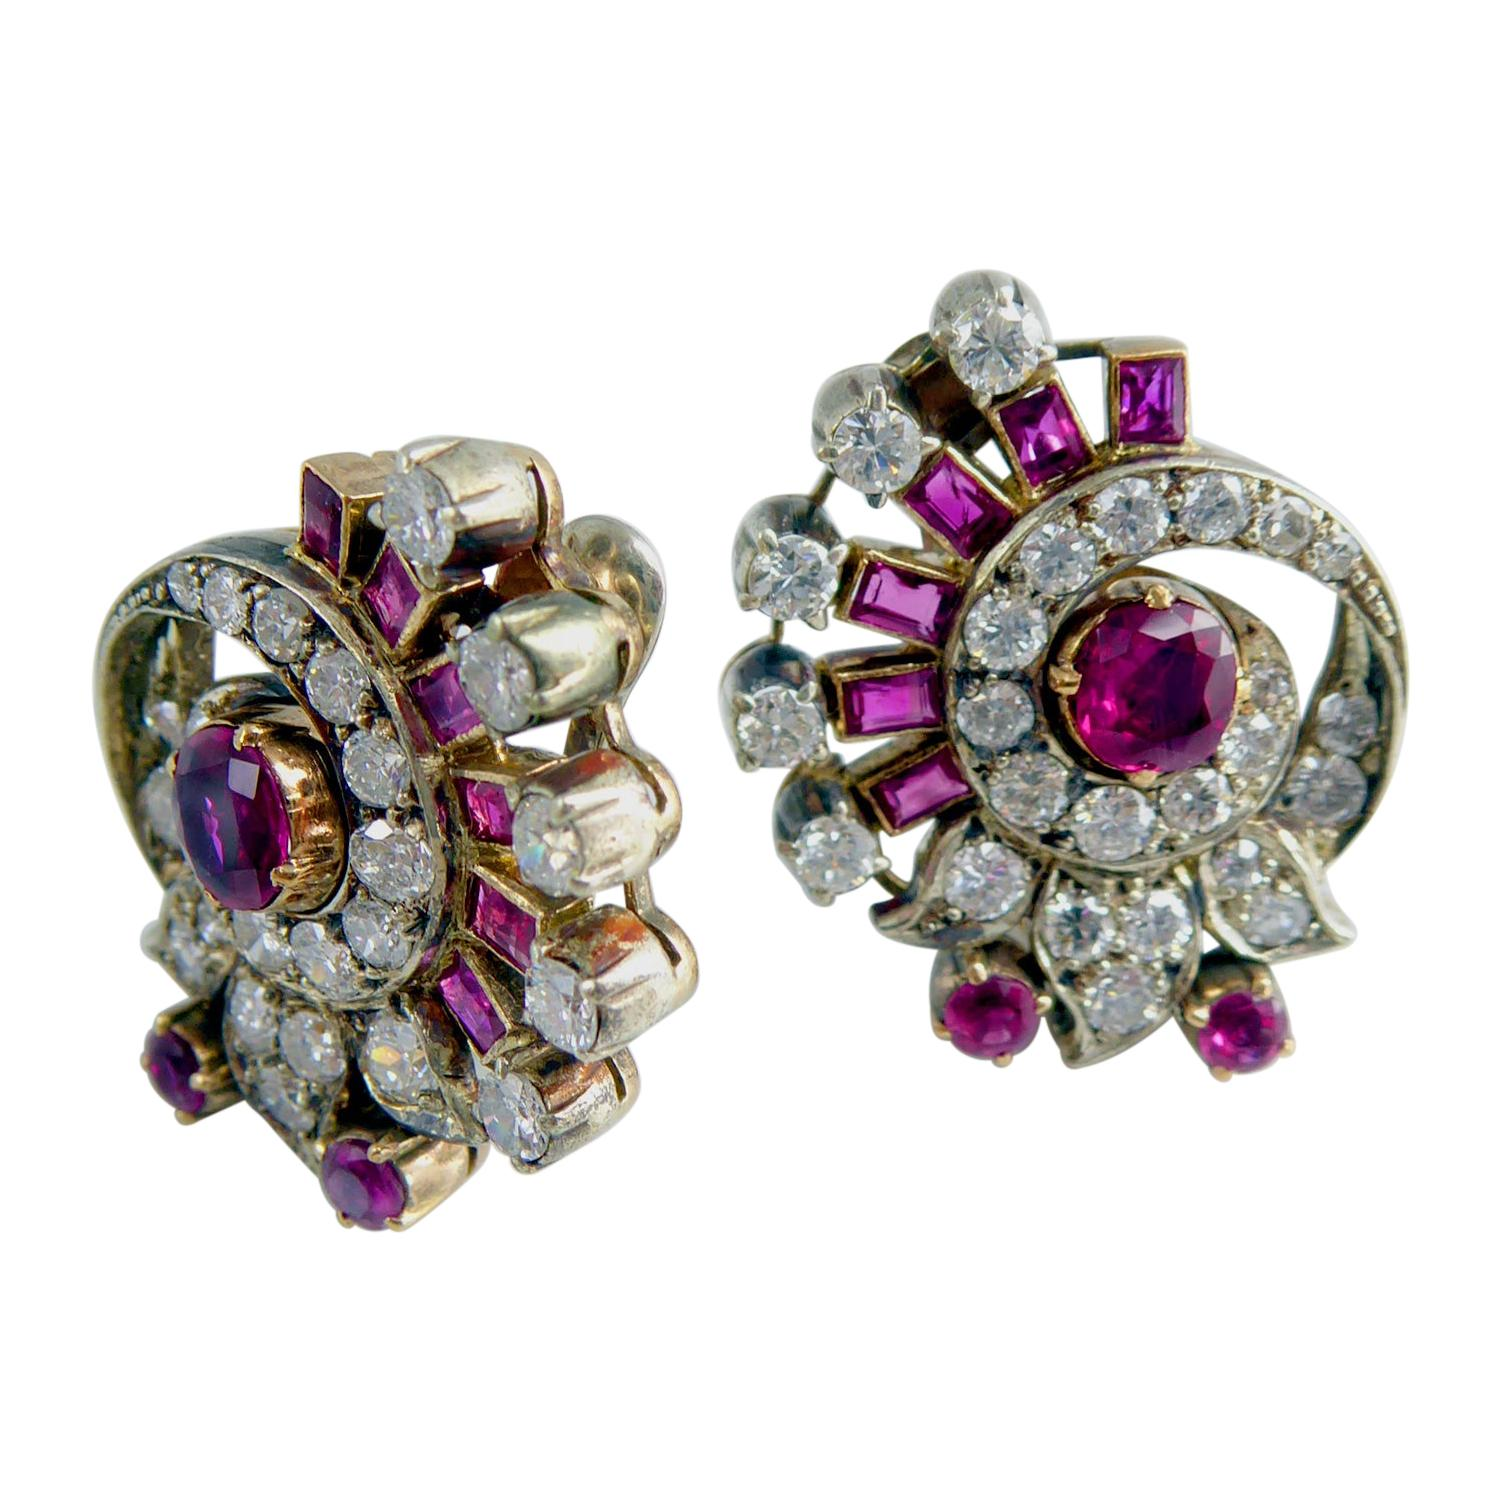 Art Deco 2.20 Carat Diamond and Ruby Earrings, Clip on Fittings